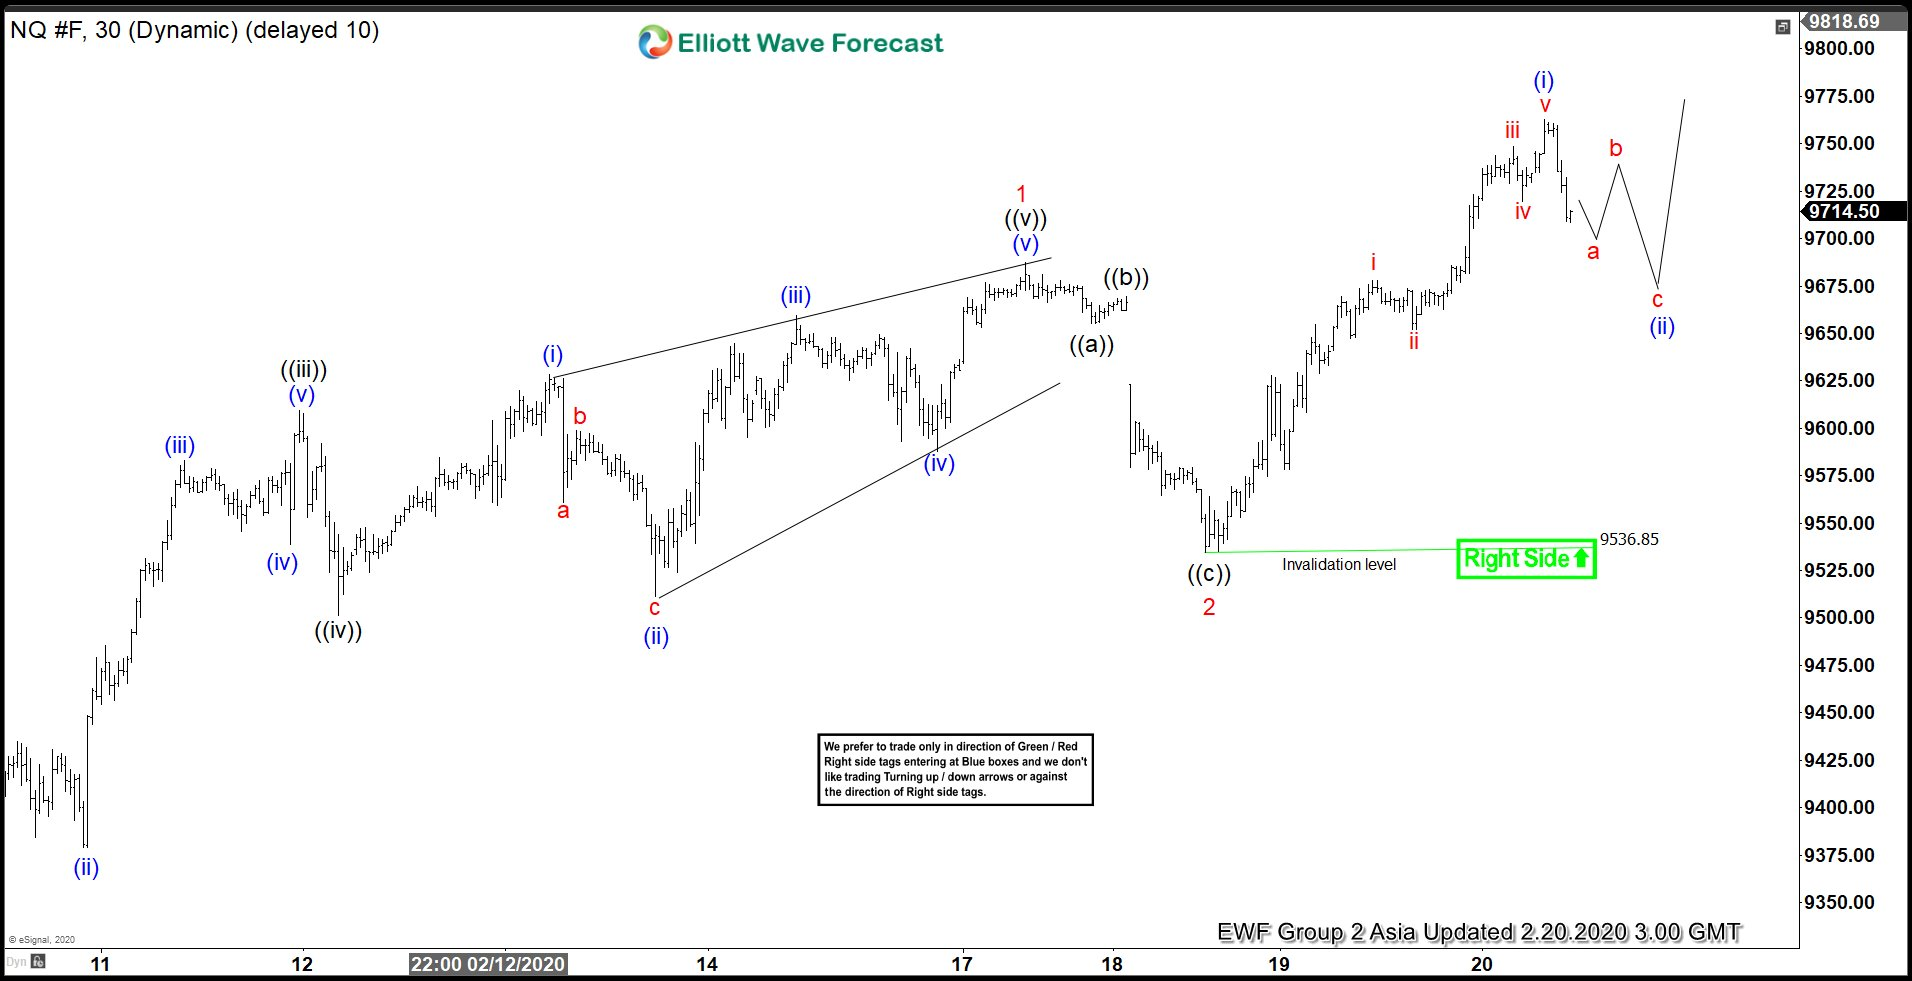 Elliott Wave View: NASDAQ (NQ_F) Continues Marching to All-Time High